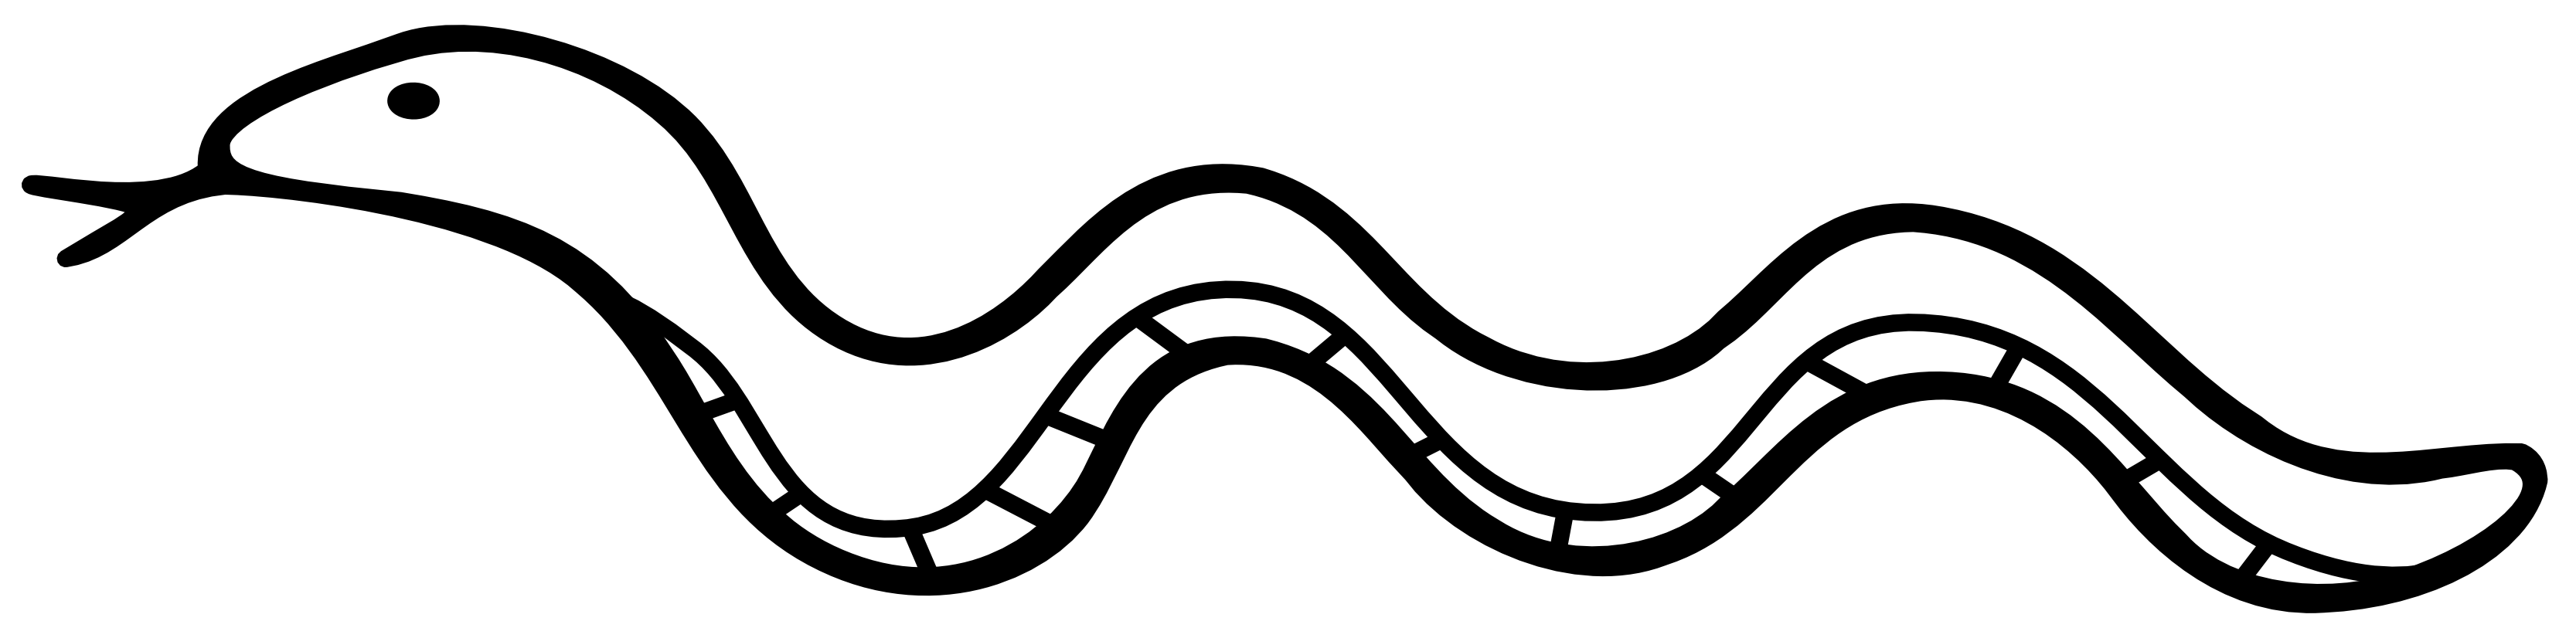 Kid clipart snake. Cute black and white